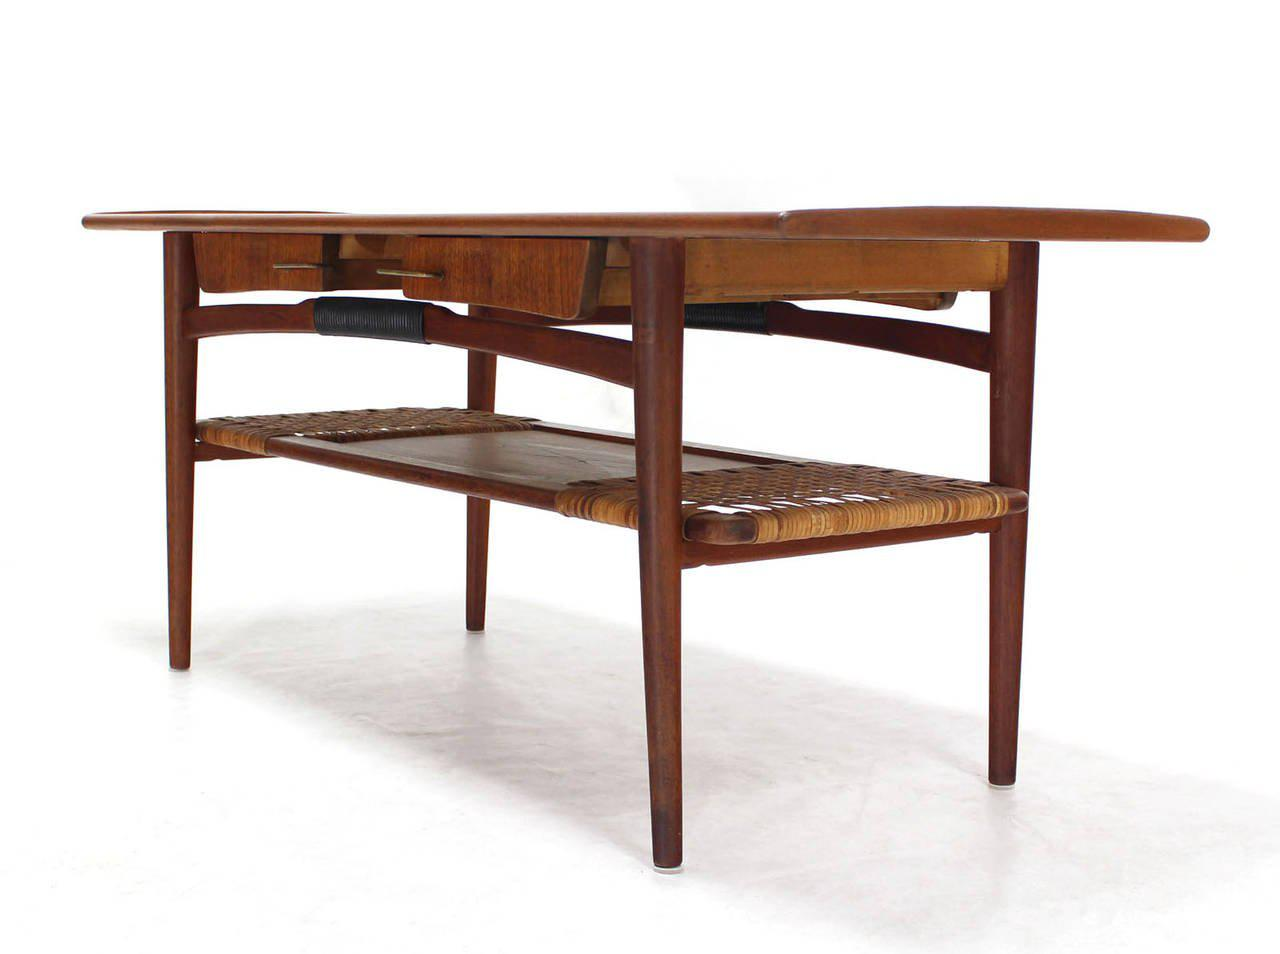 Danish Modern Teak Coffee Table Cane Shelf Rolled Edges 4 Storage Drawers    Image 3 Of